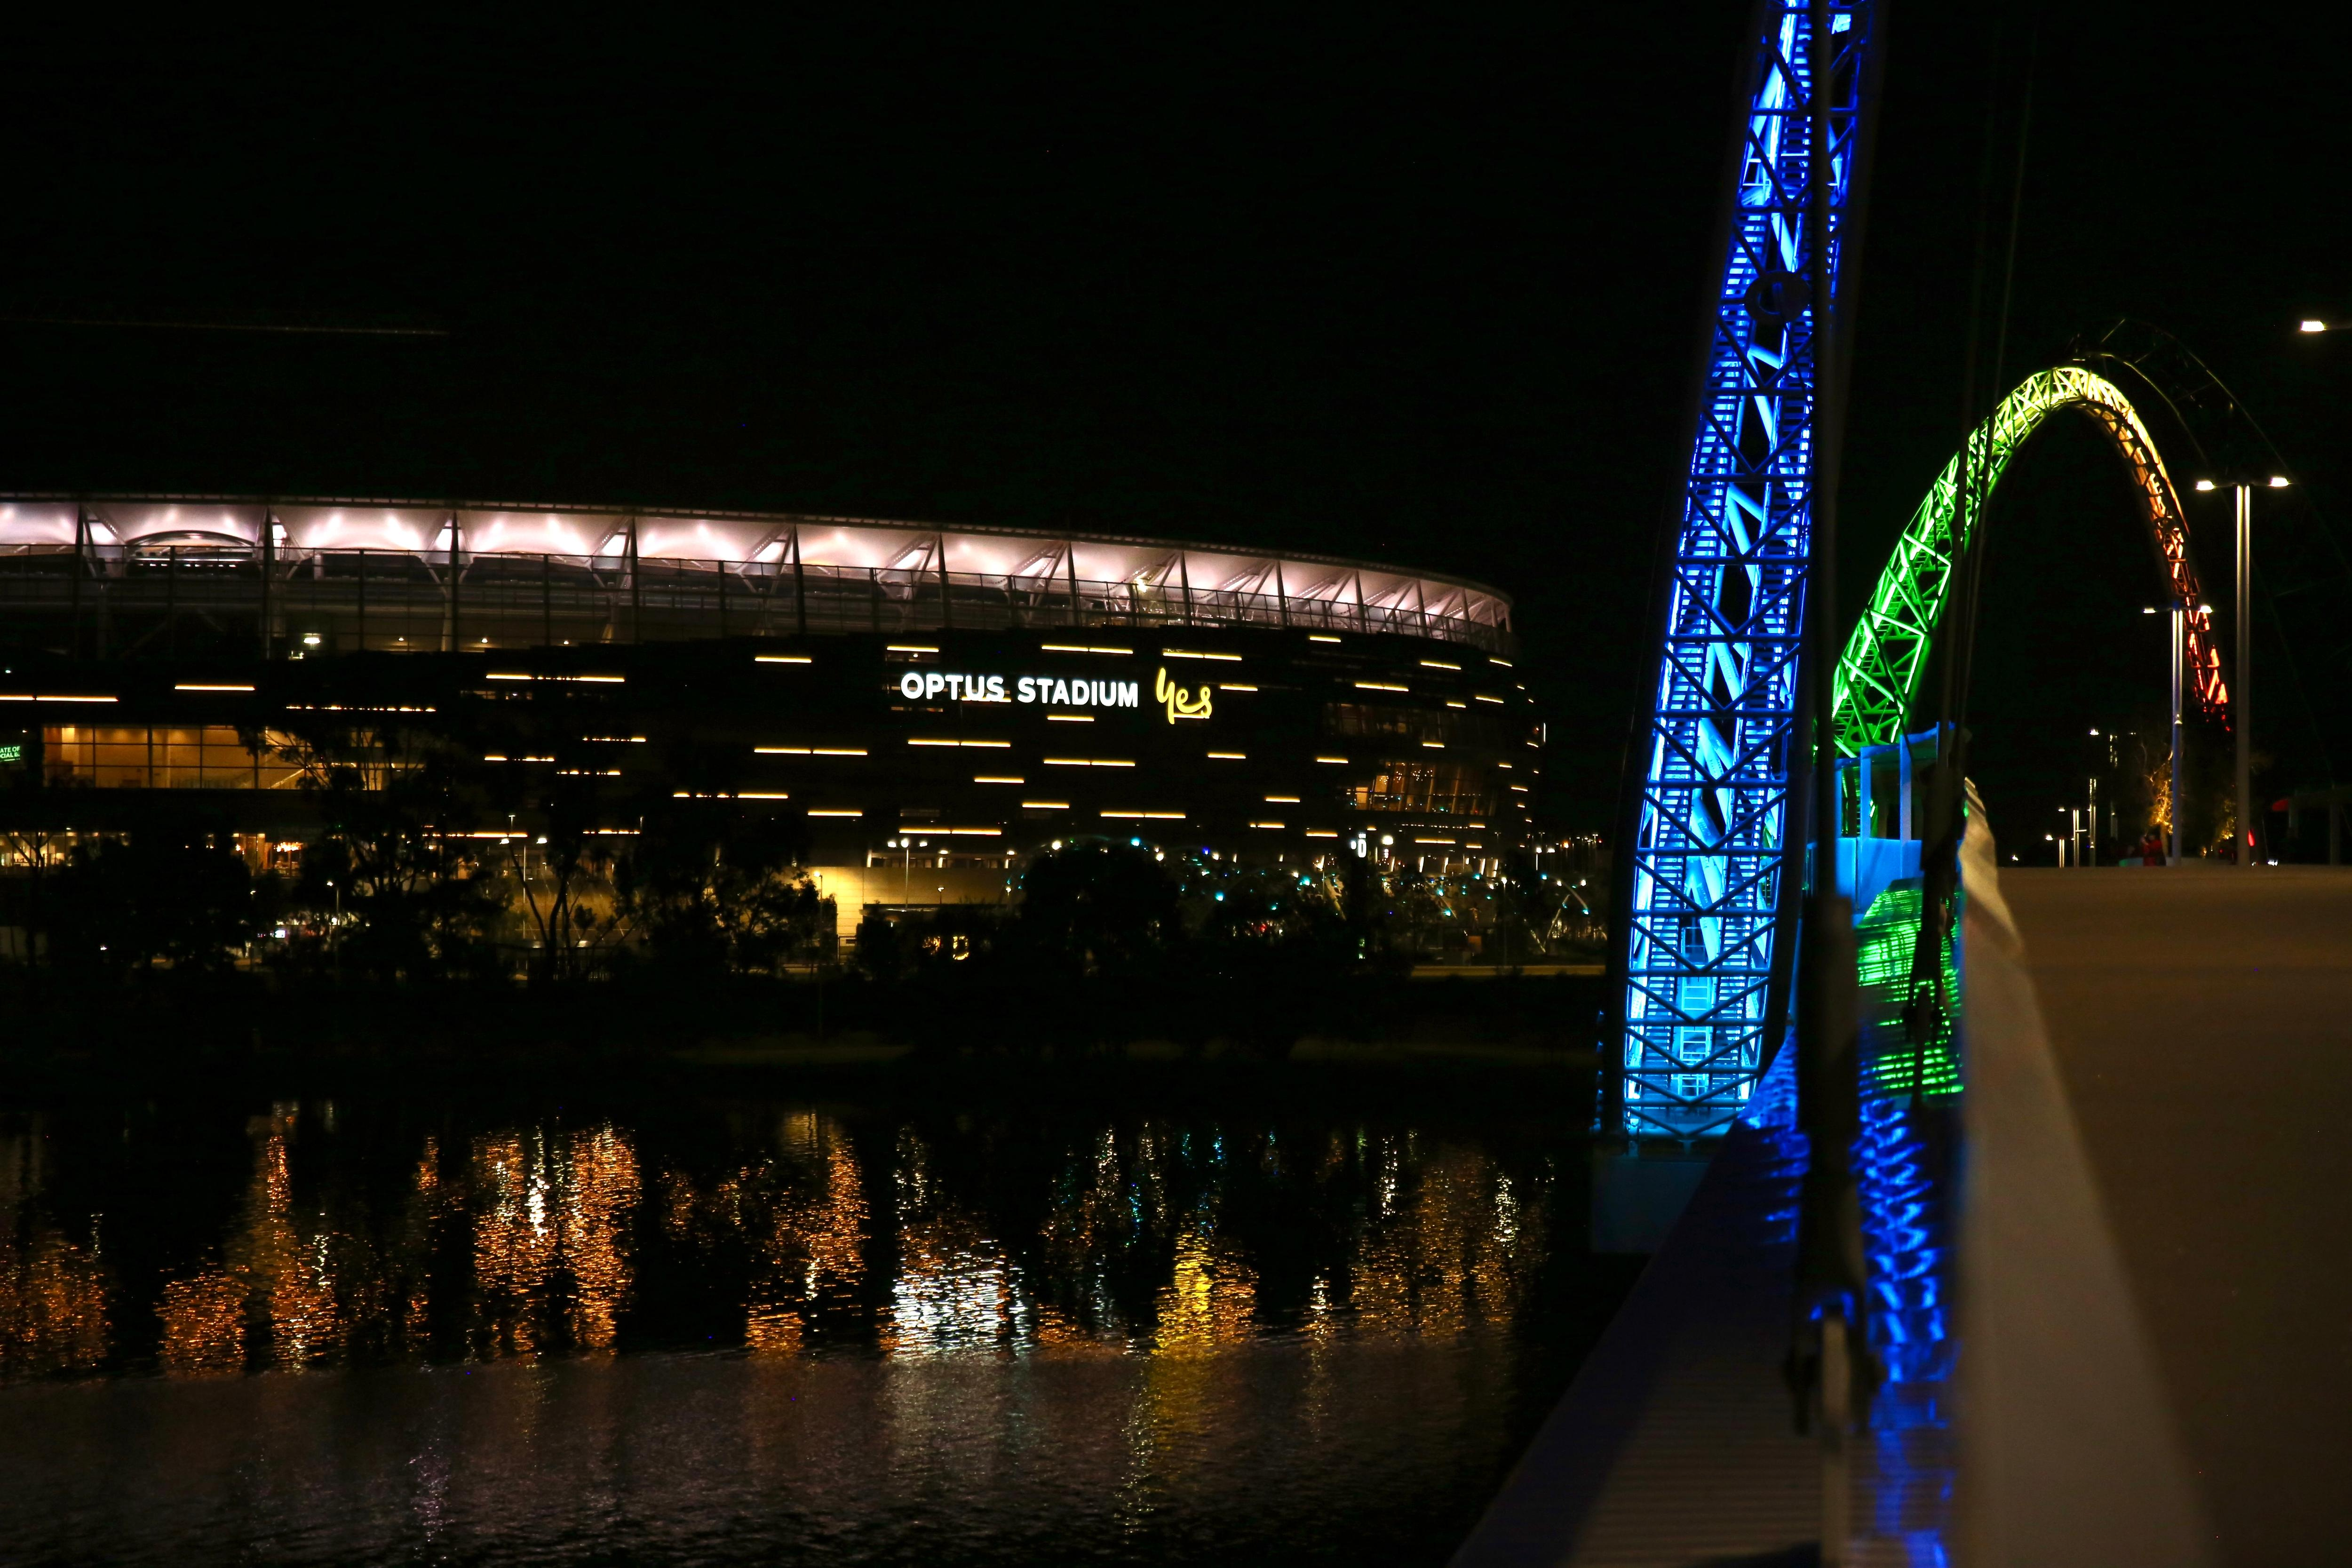 Perth Stadium at night reflecting onto the river as seen from Matagarup Bridge lit up blue and green